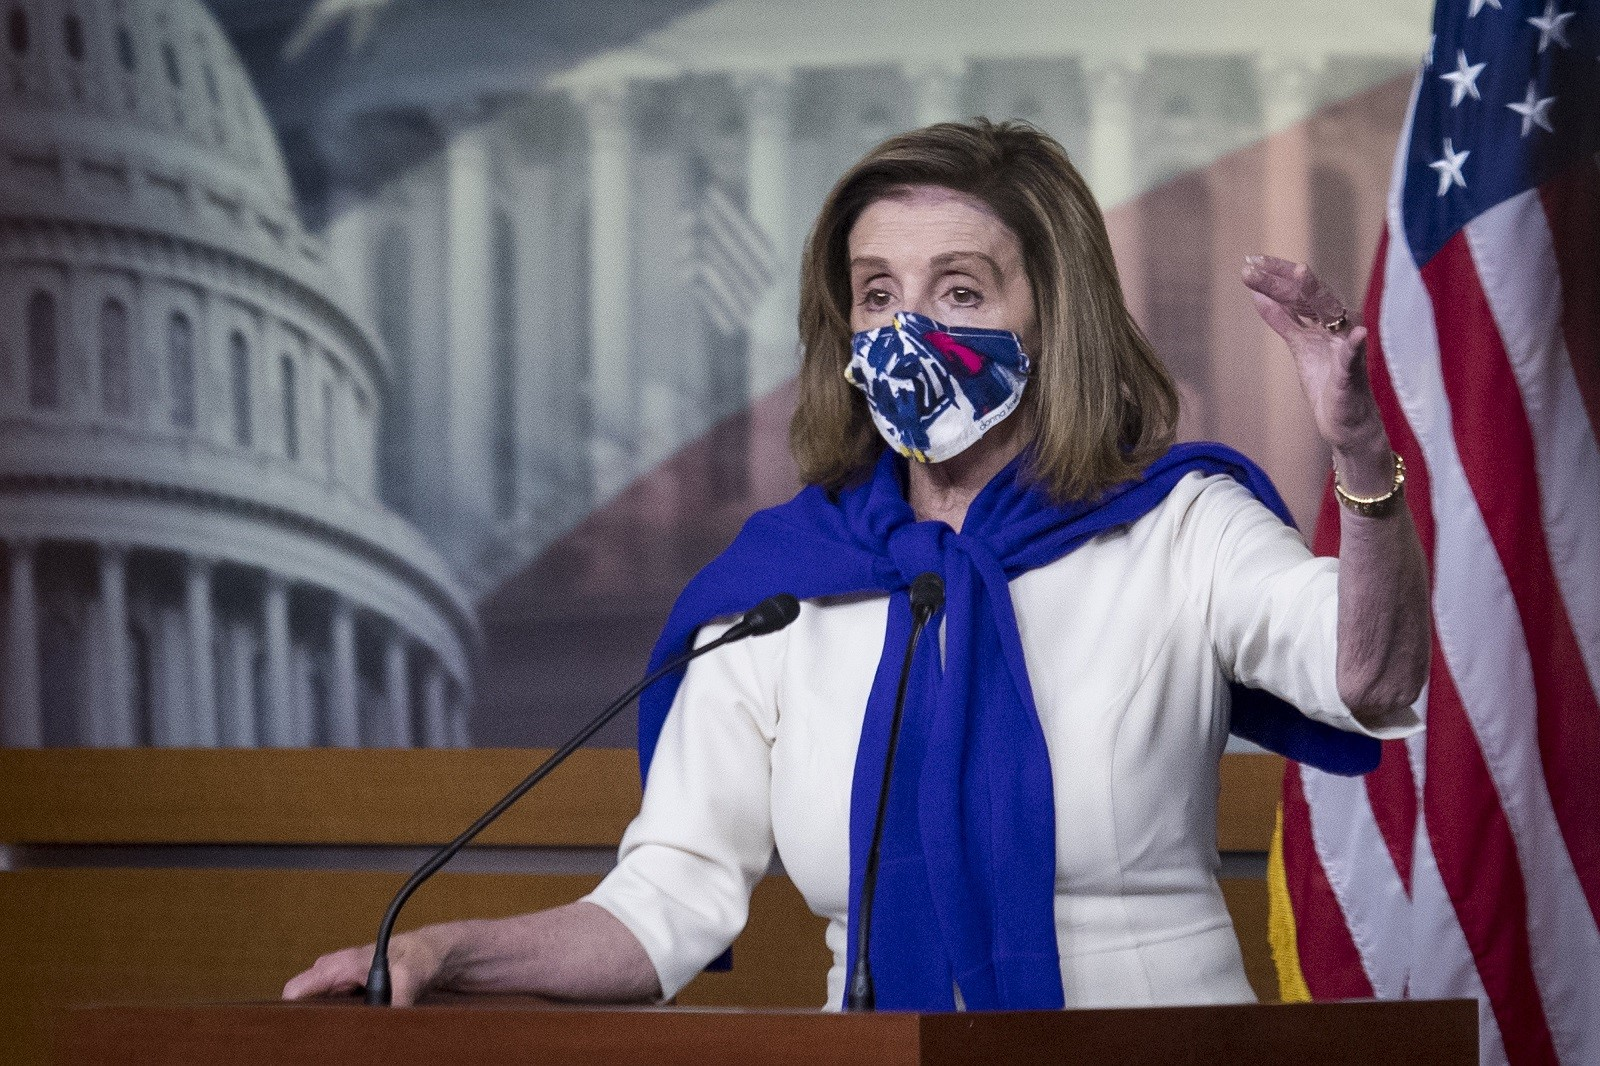 Stimulus package update: Pelosi says a deal will be reached by December 11th